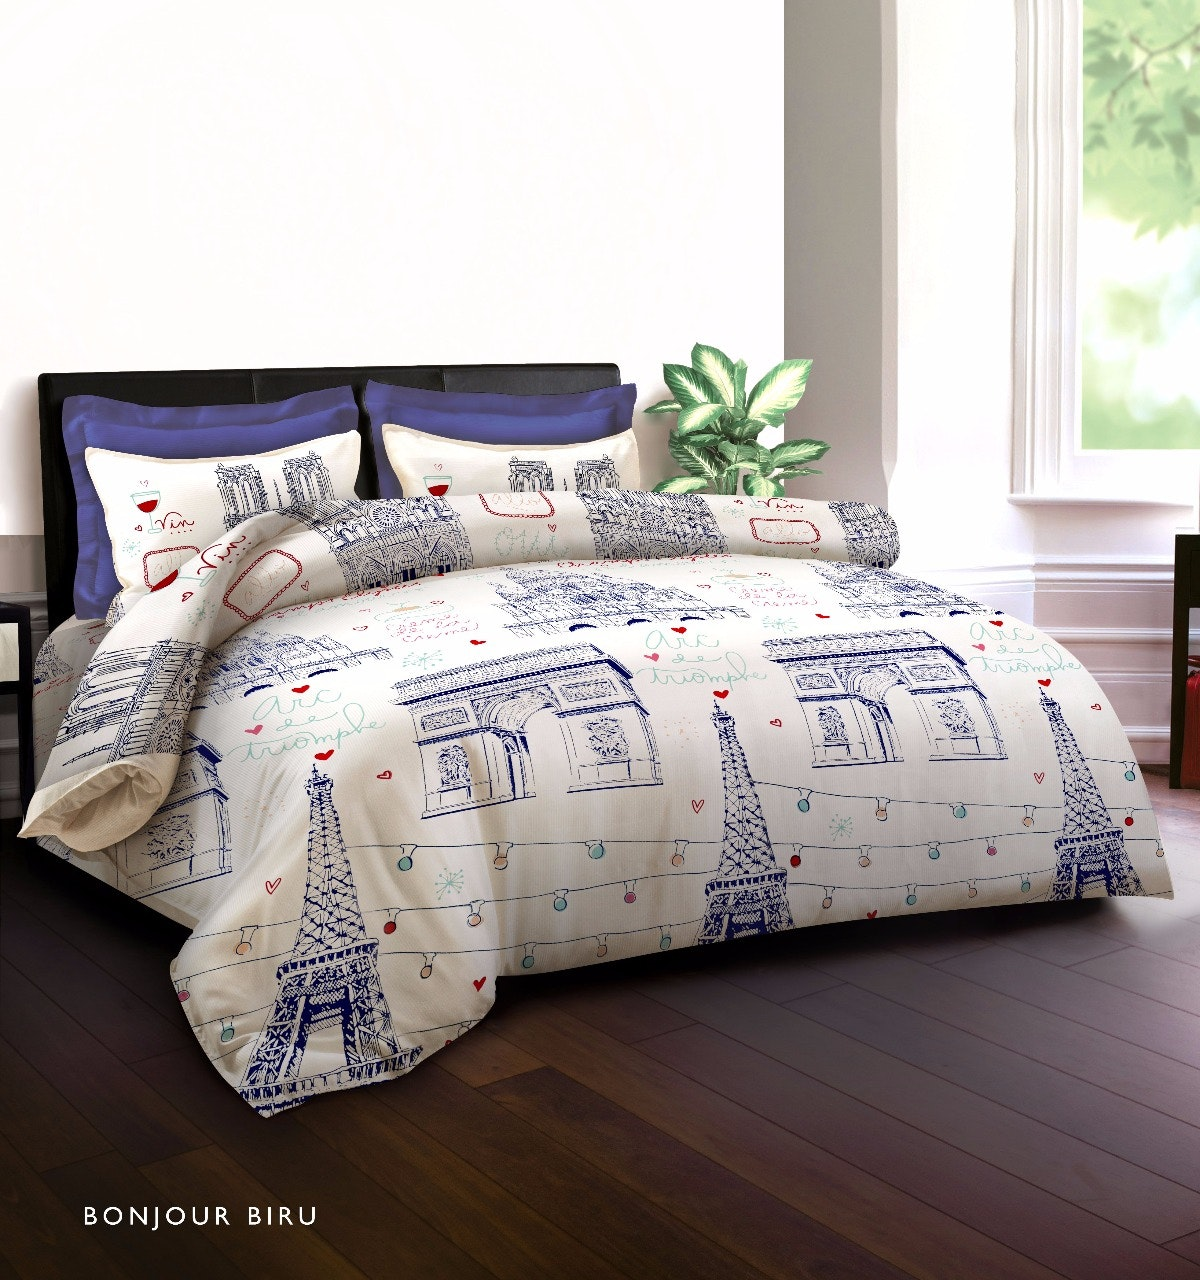 King Rabbit Set Sprei Sarung Bantal Extra King Bonjour - Biru Uk 200x200x40 cm